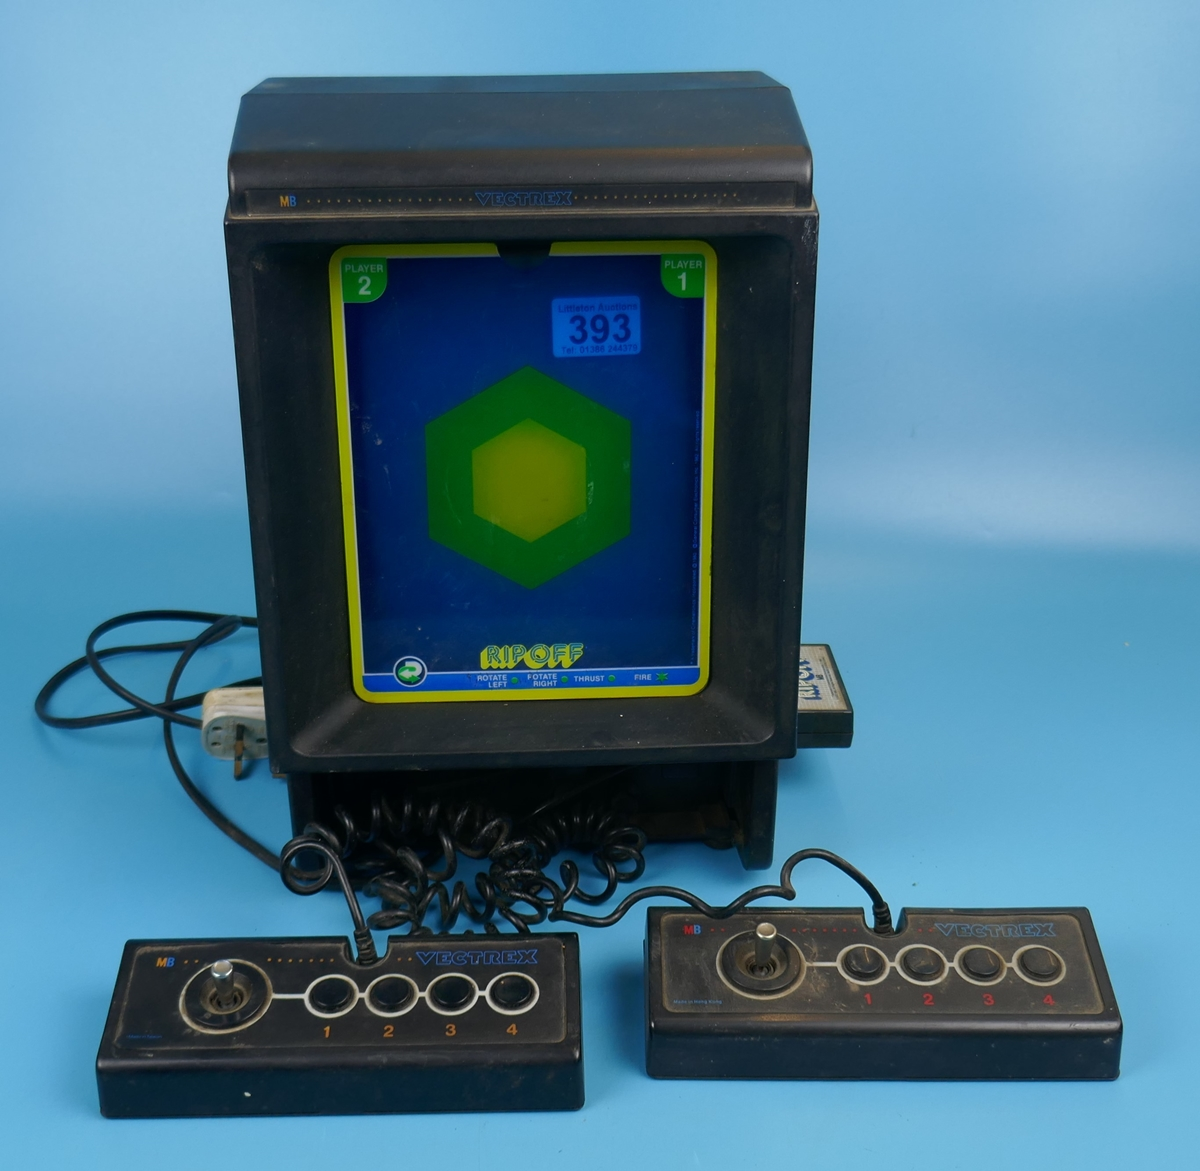 Vintage MB Vectrex computer game with 1 game cartridge